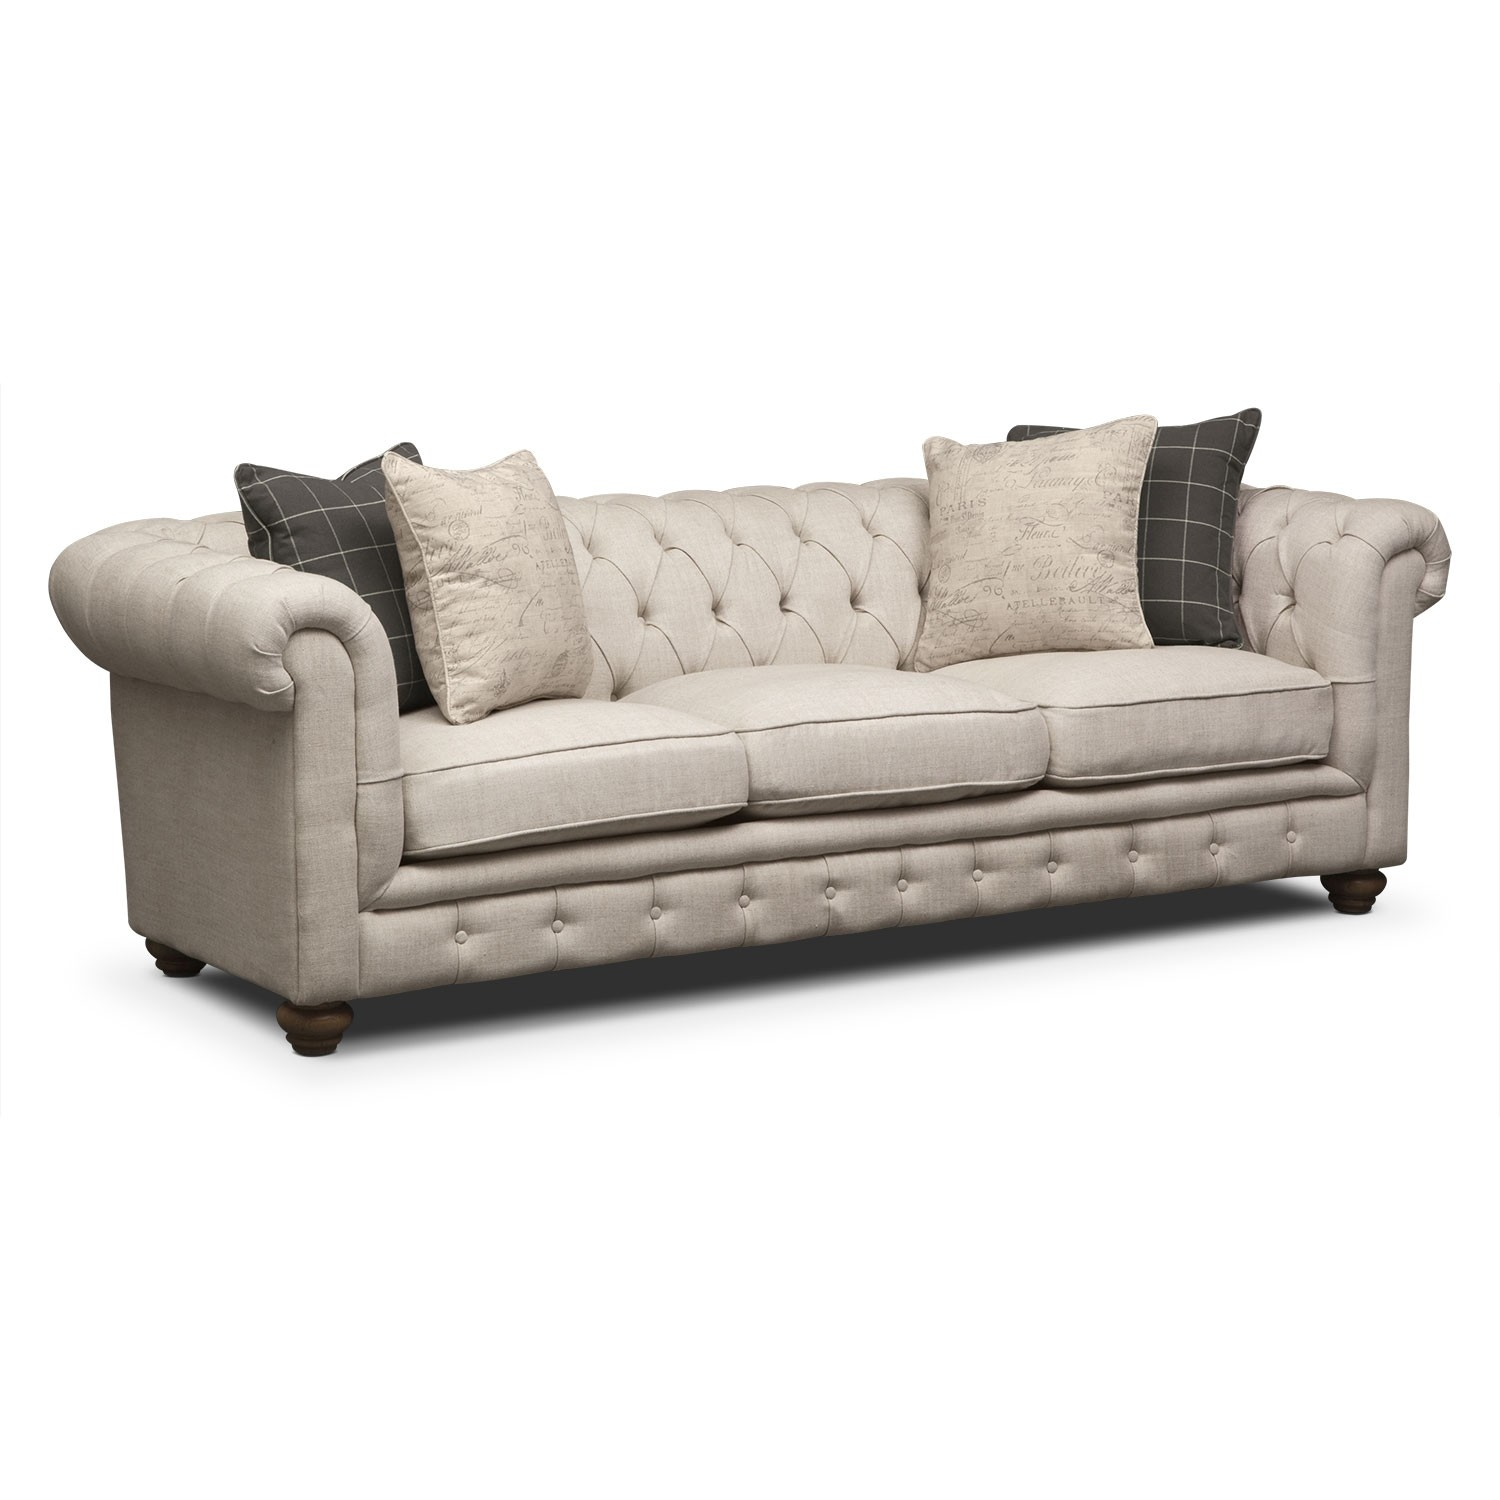 American Signature Sofa Lovely Inspirational For Sofas And Couches Set Concept